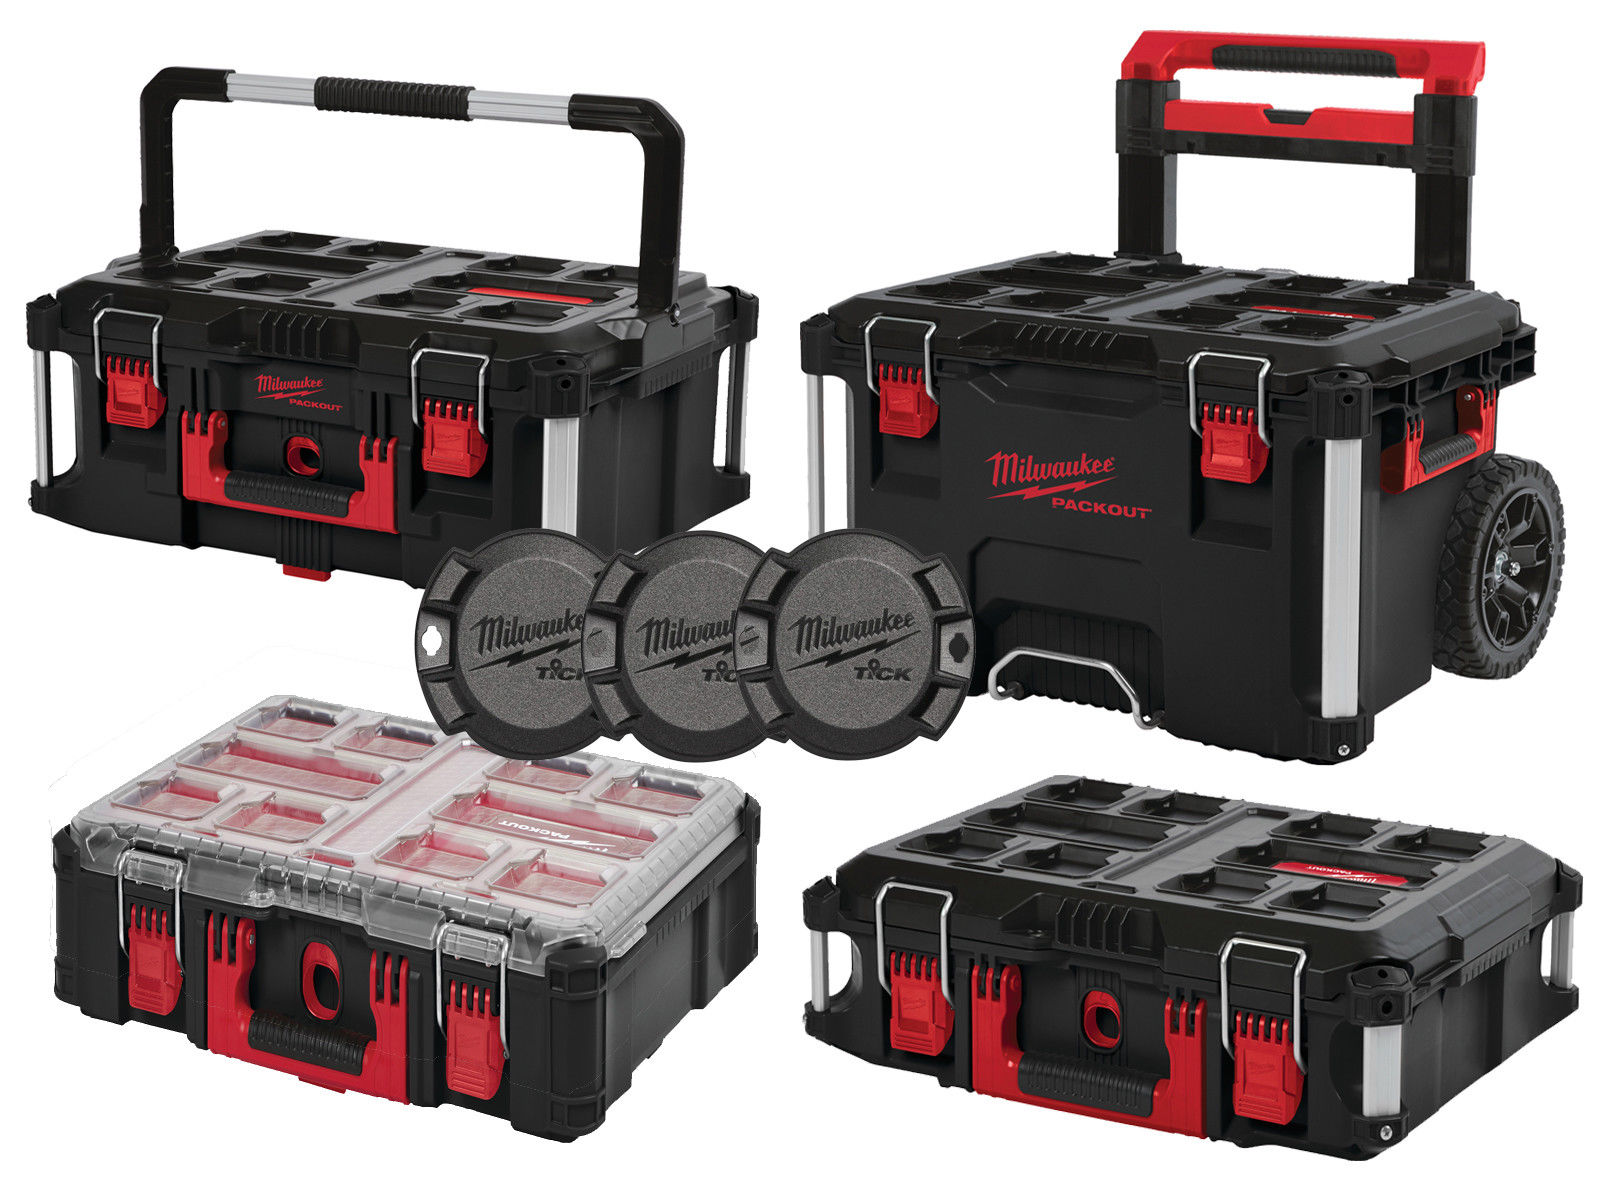 MILWAUKEE PACKOUT - PACKOUT TROLLEY / BOX 2 / BOX 3 / ORGANISER & TICKS - 4932464244